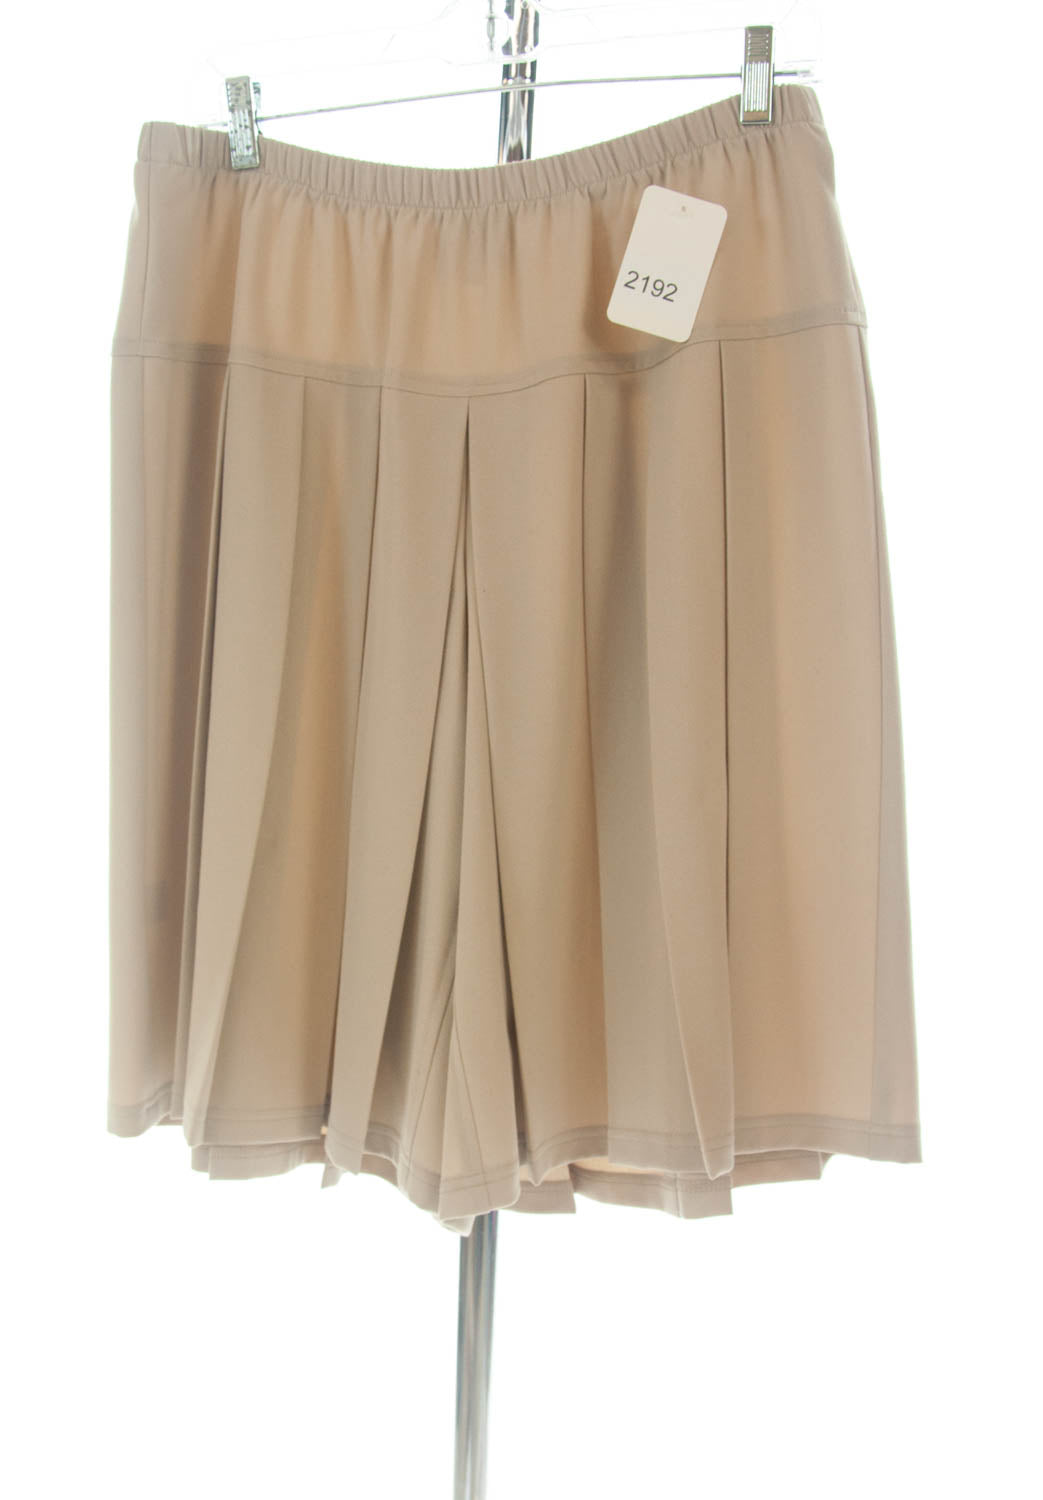 #2192 Sale Rack Item / Traditional Culottes / Petite Large / Lt Khaki